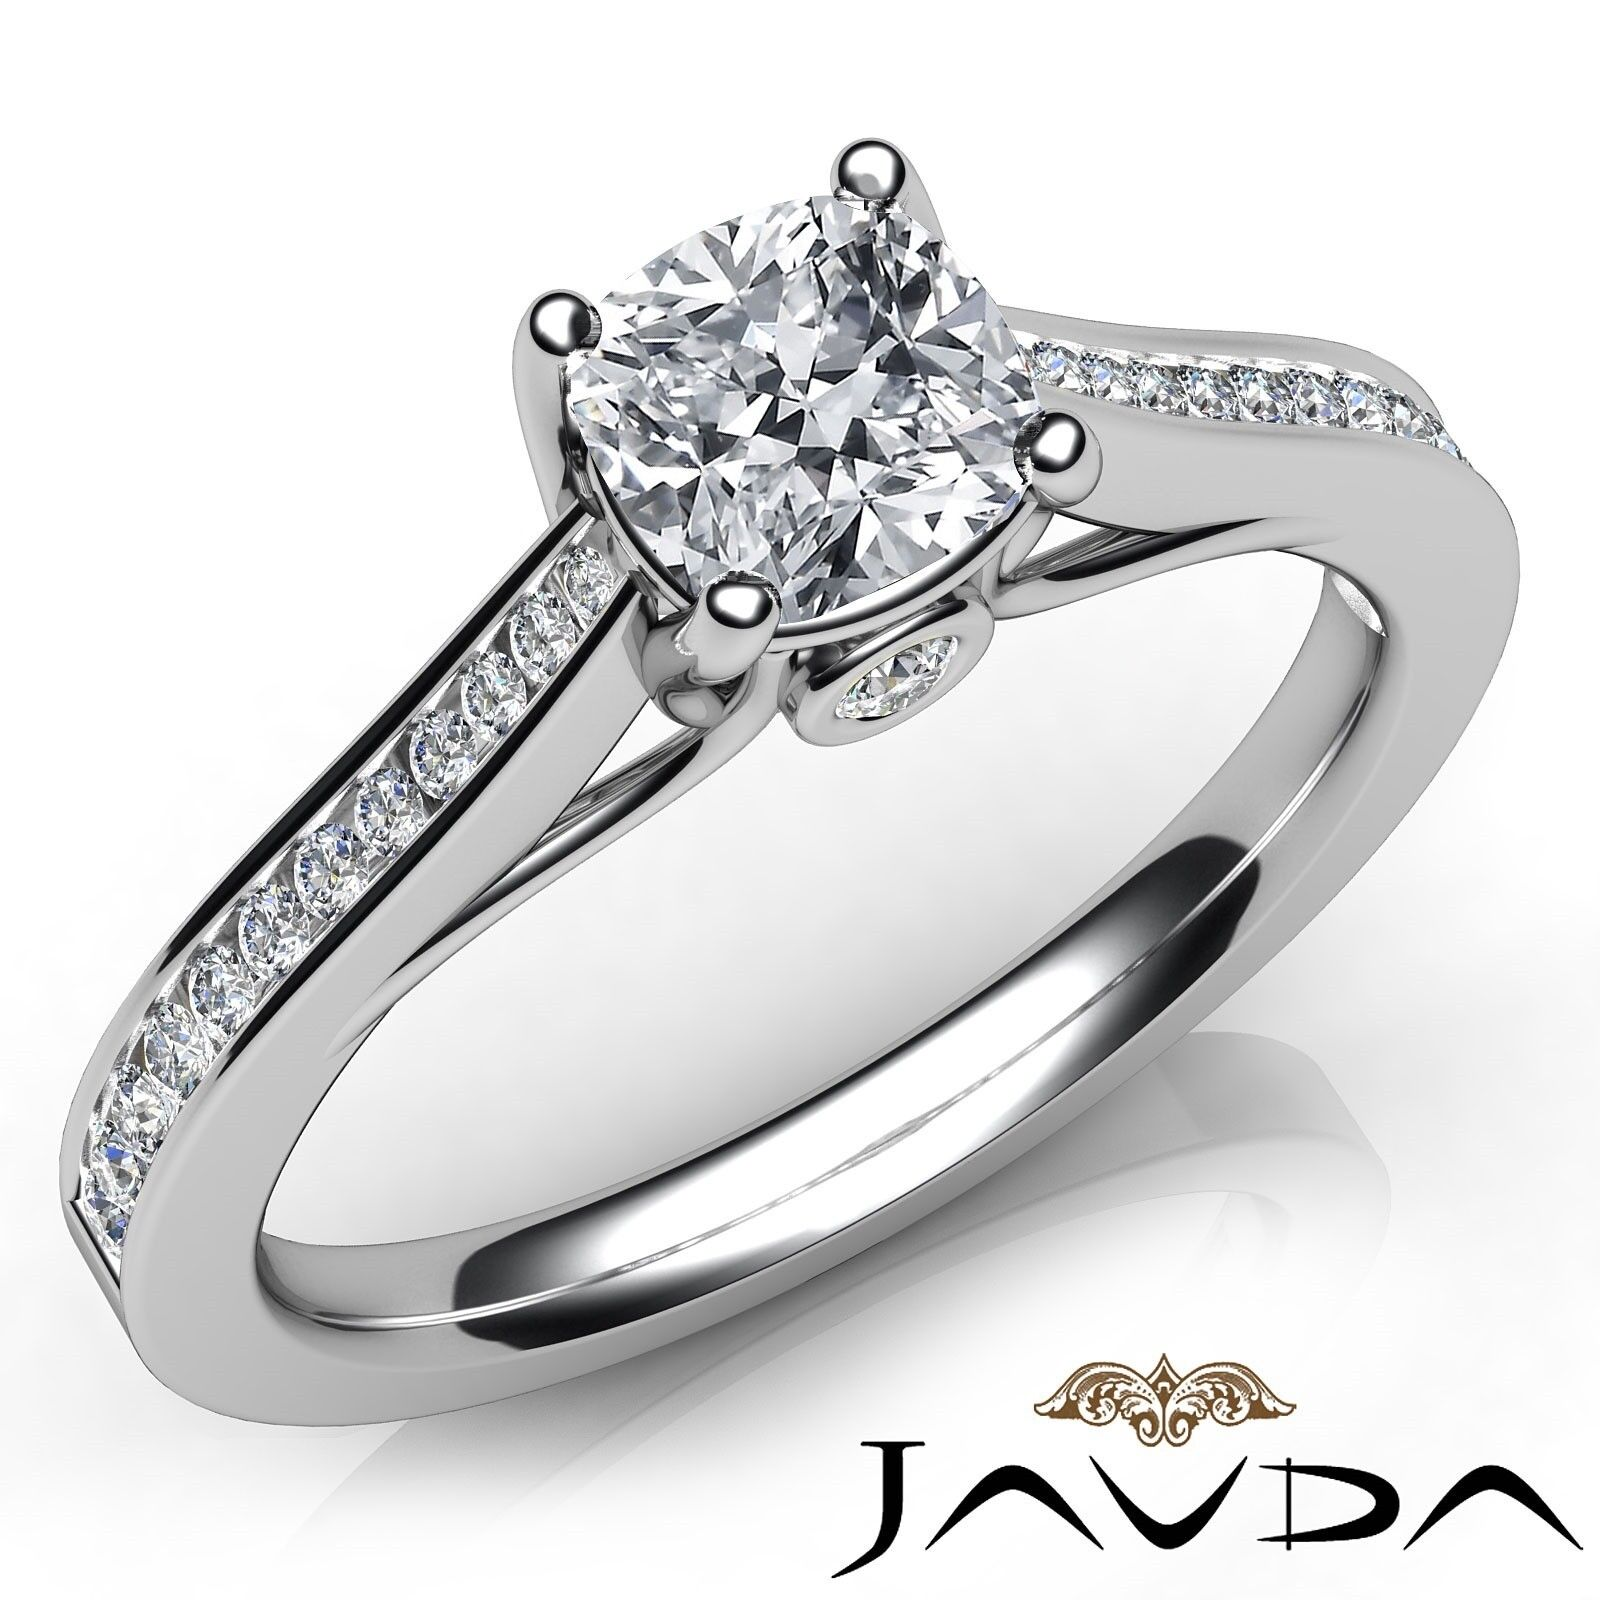 1.1ctw Channel Bezel Prong Set Cushion Diamond Engagement Ring GIA H-VS2 W Gold